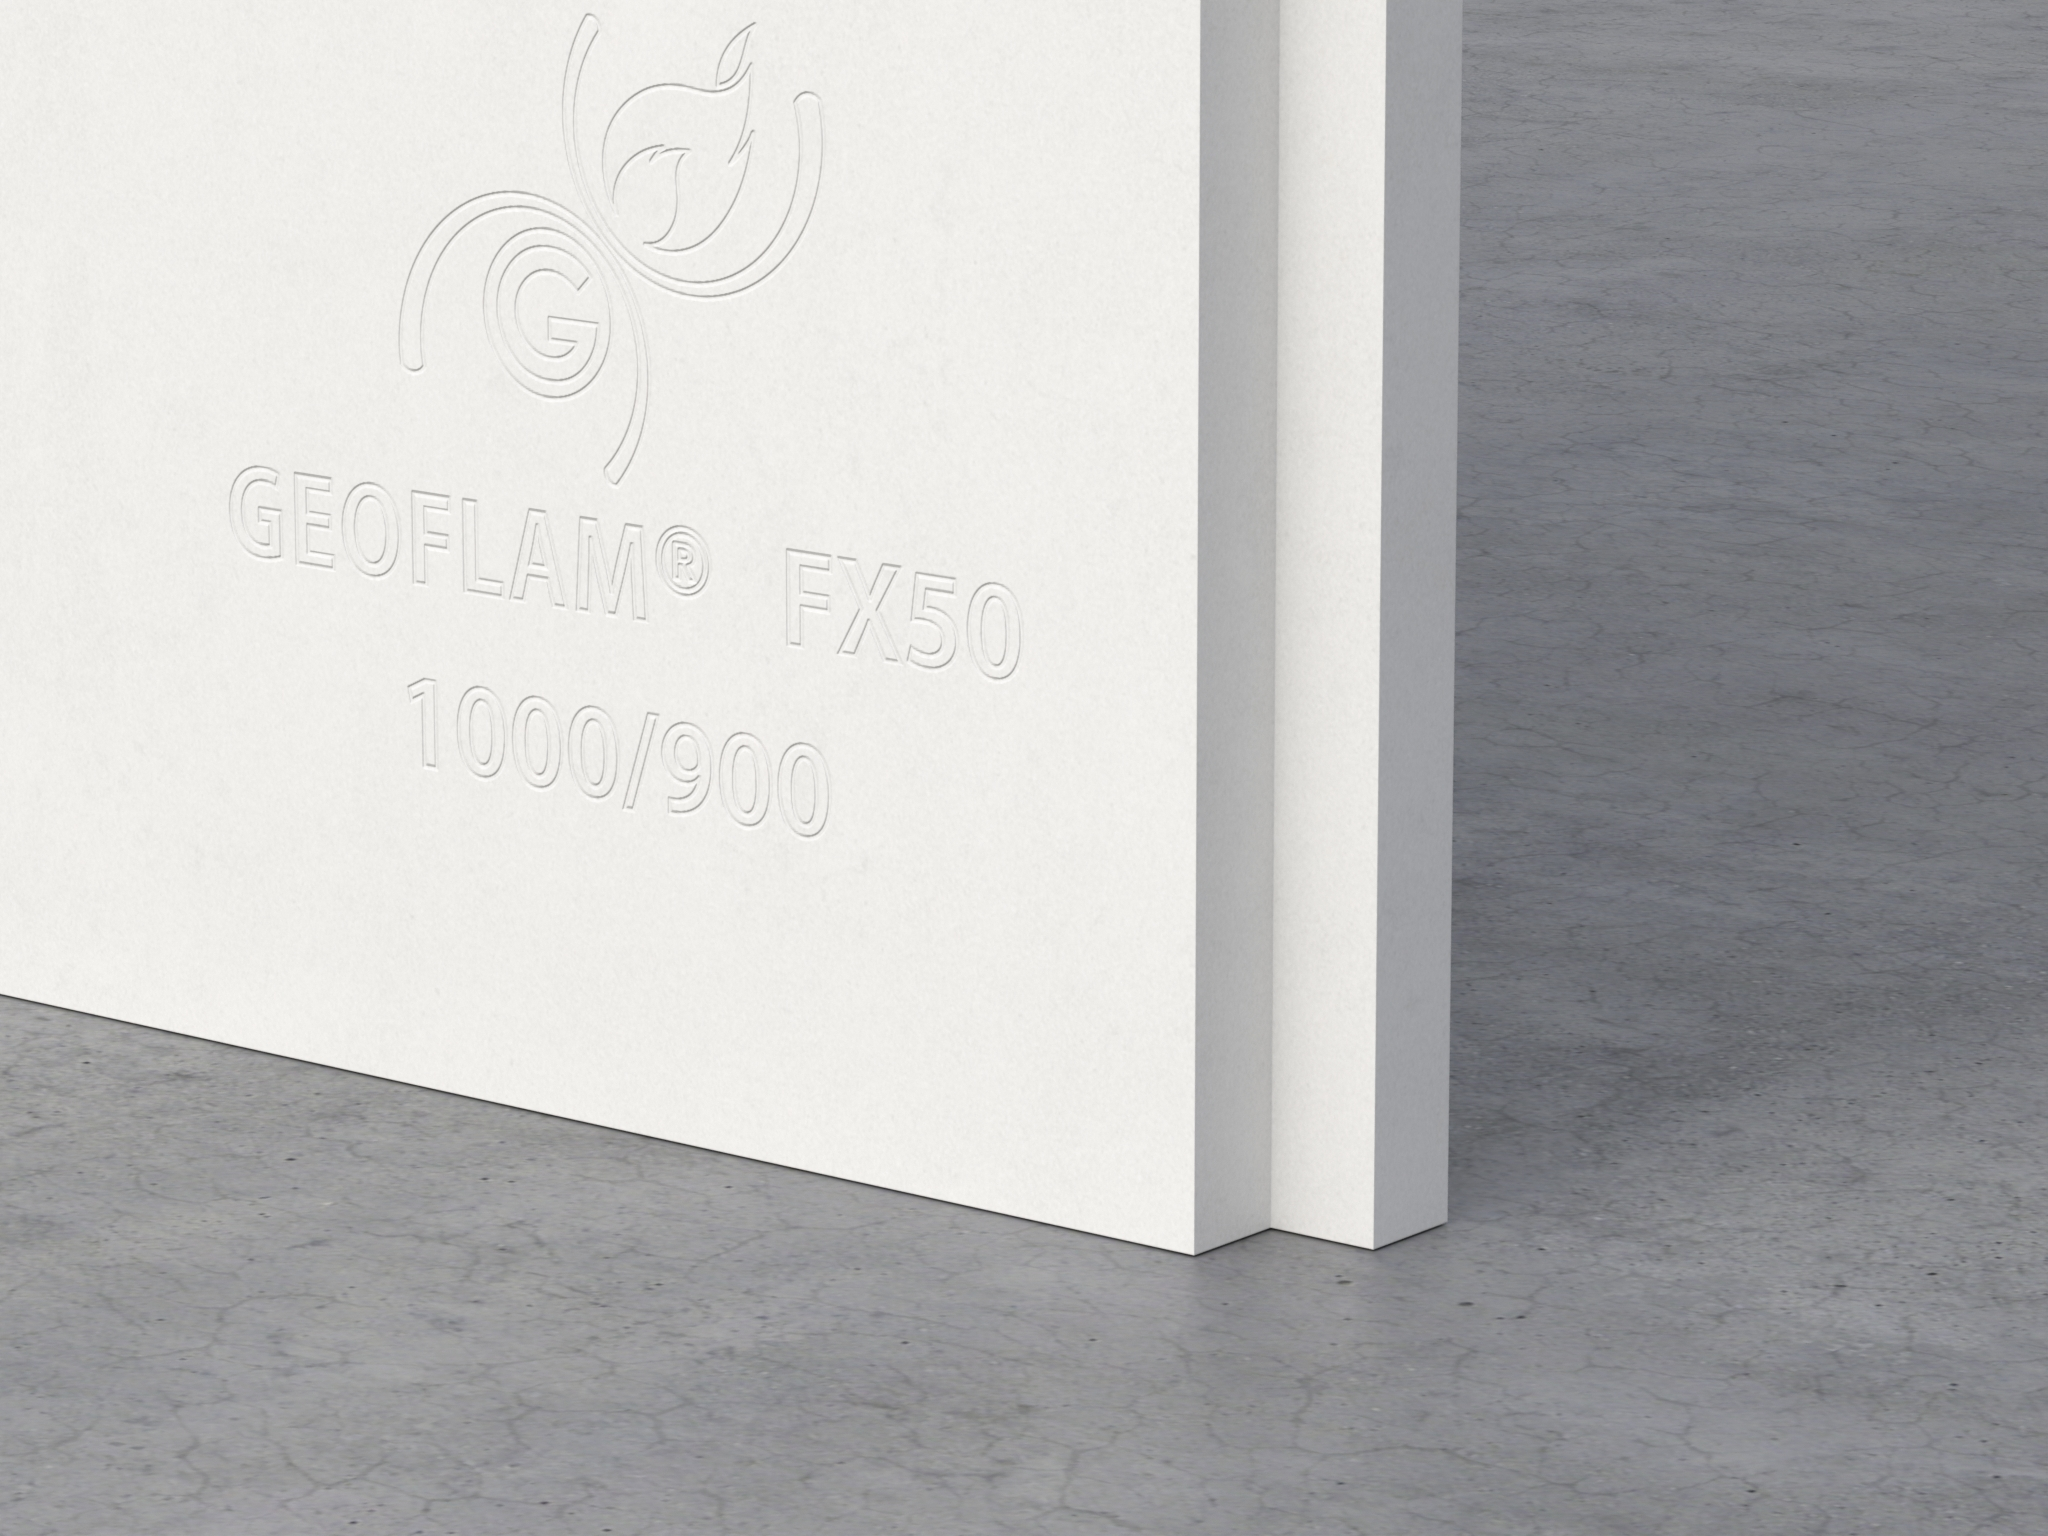 Gypsum and fibreglass fire protective board for passive fire protection